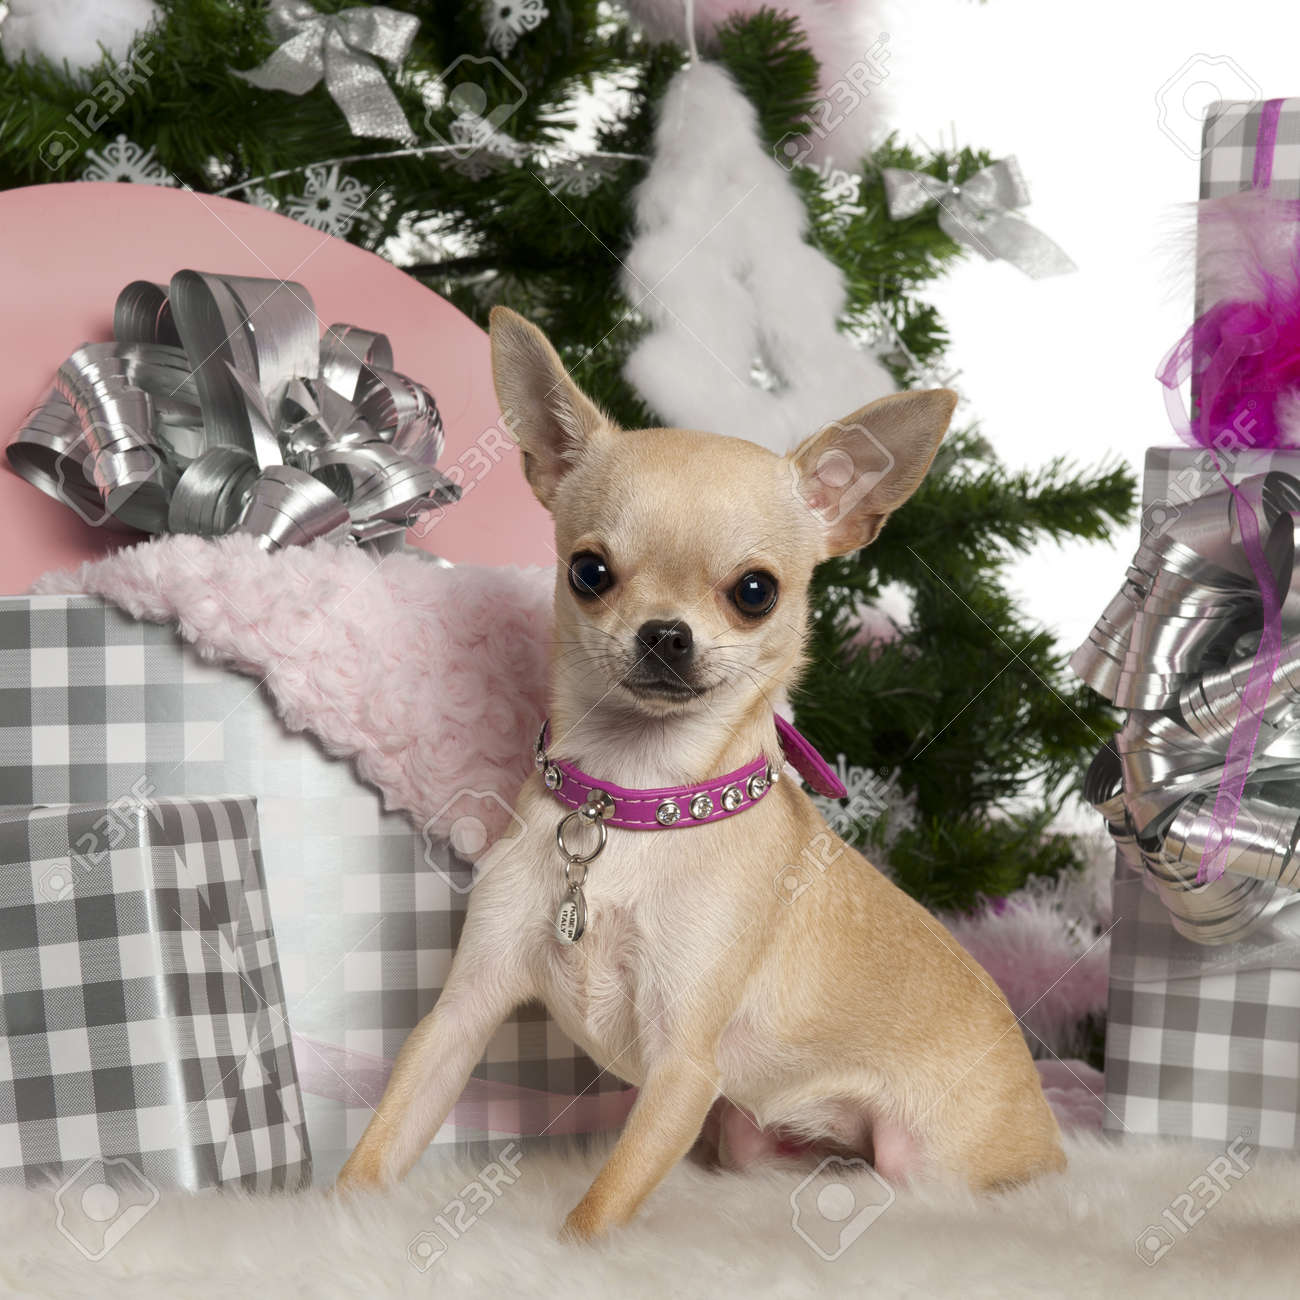 Chihuahua, 8 months old, with Christmas tree and gifts in front of white background Stock Photo - 13592088